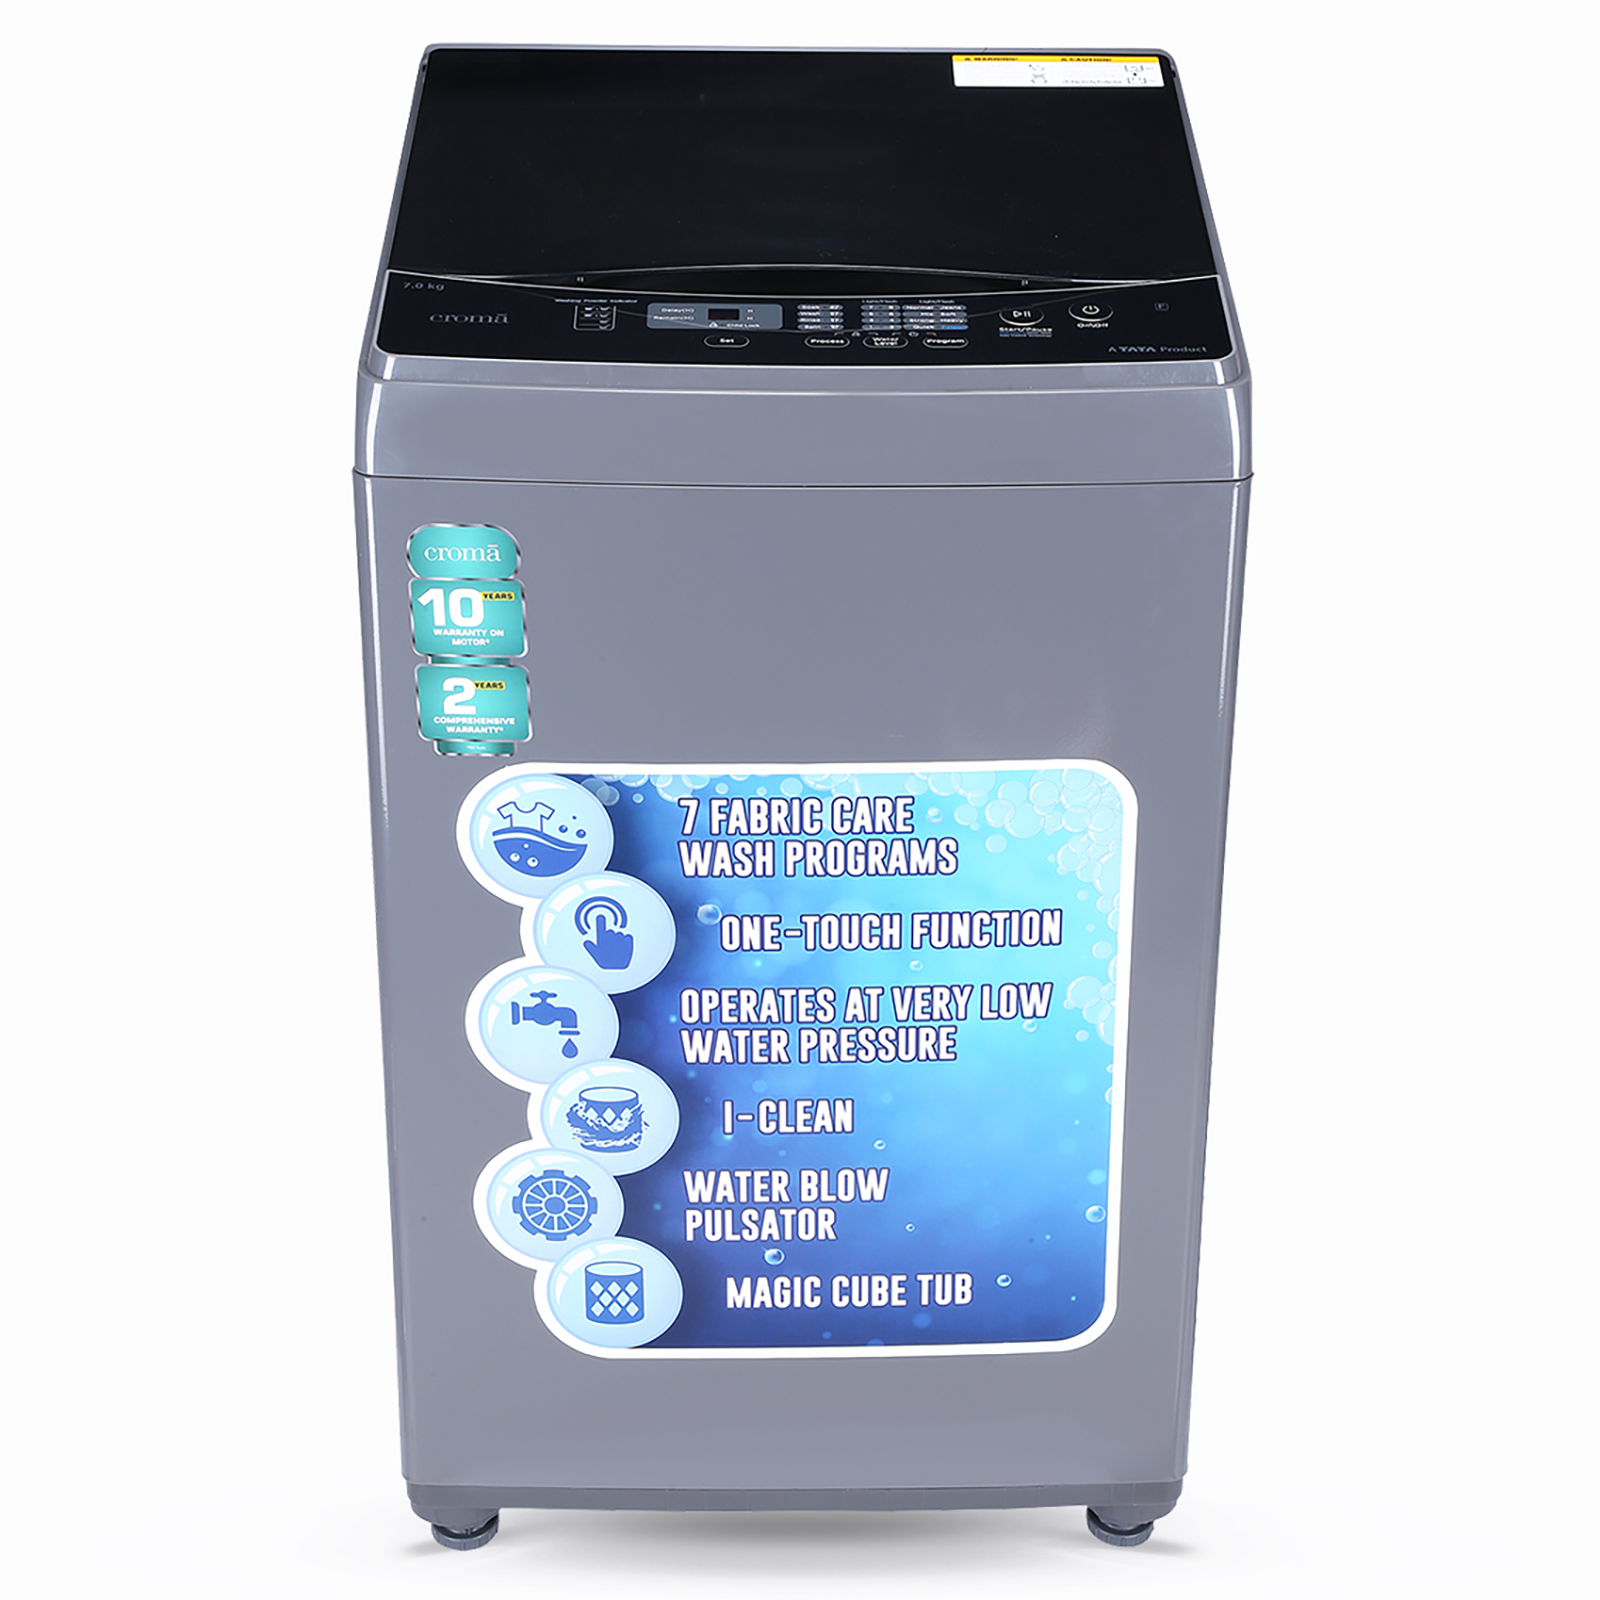 Croma 7 Kg Fully Automatic Top Load Washing Machine (i-Clean Technology, CRAW1403, Grey)_1